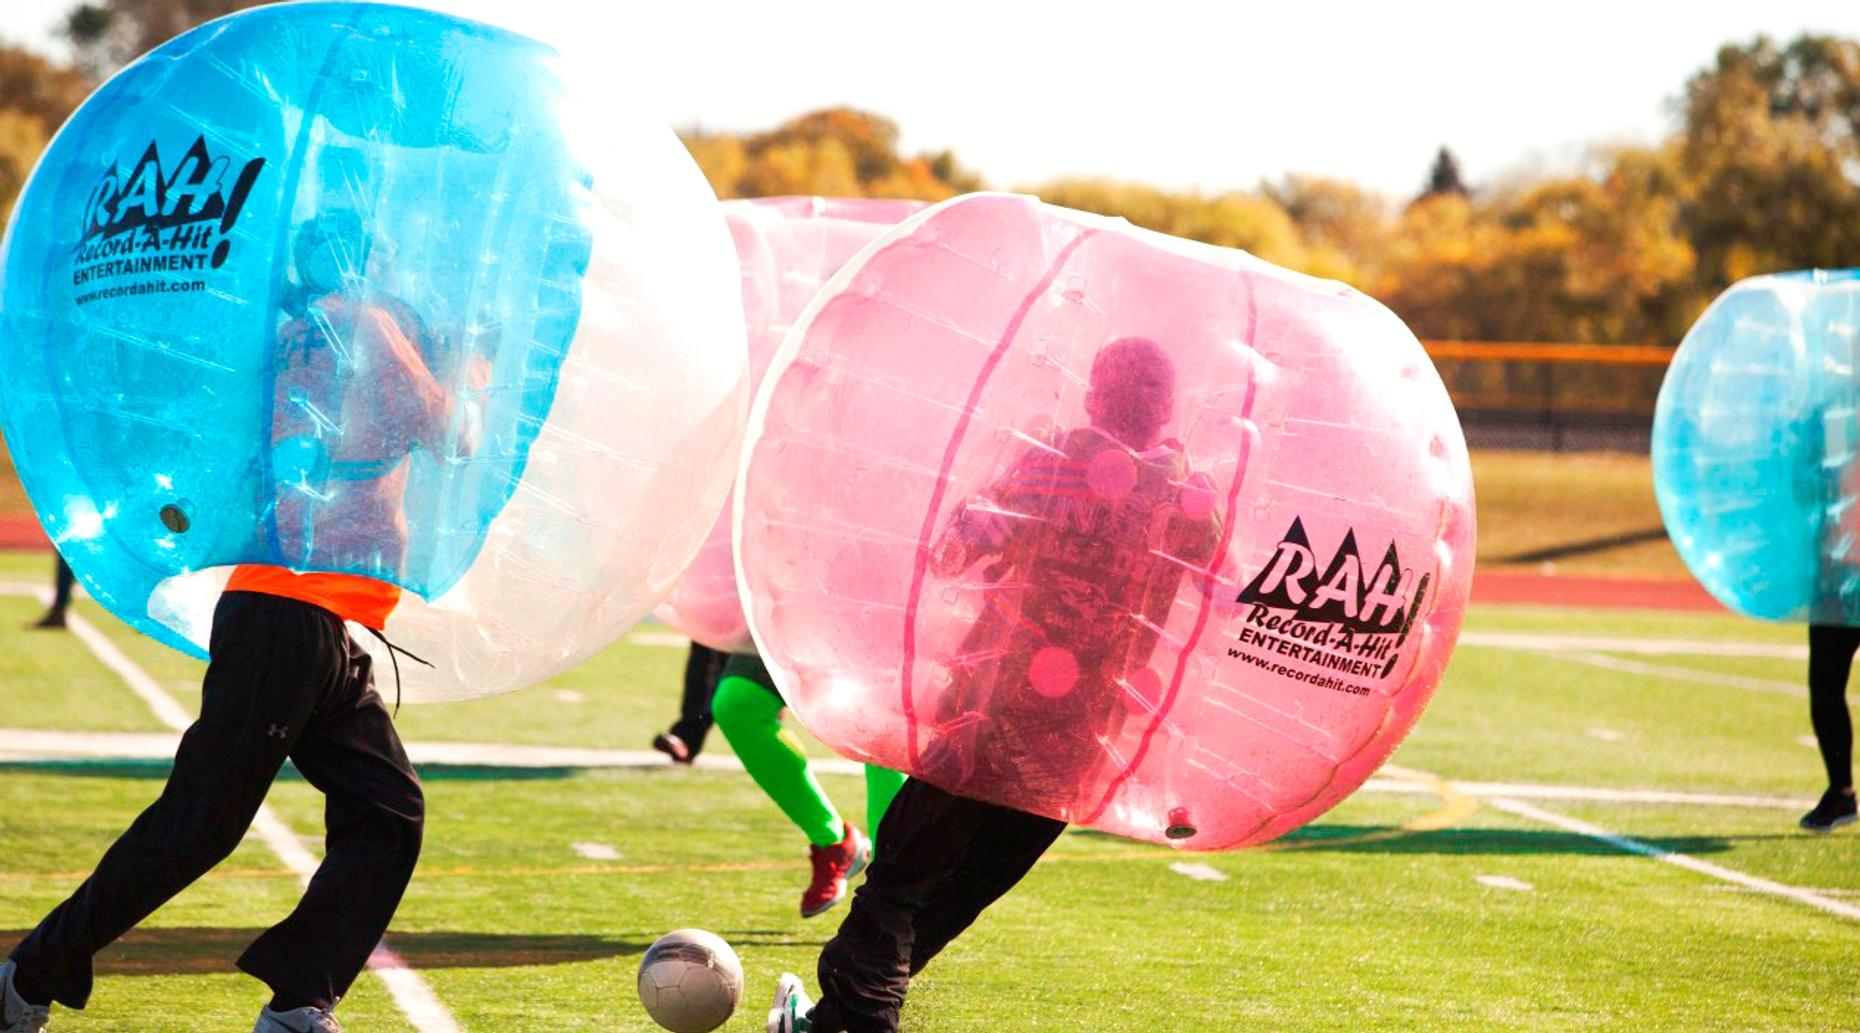 60-Minute Bubble Ball Game in St Louis Park